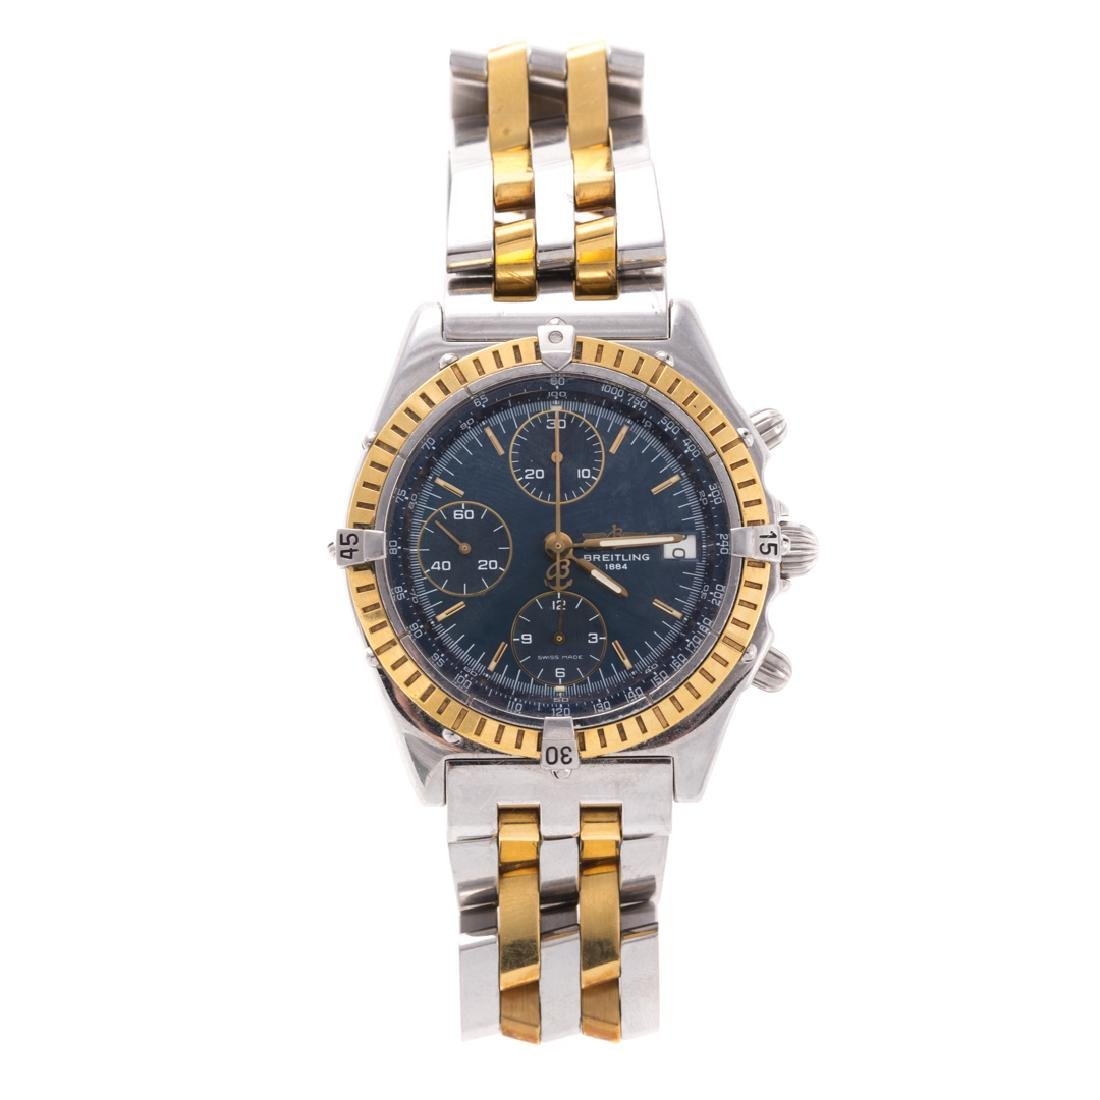 A Two Toned Breitling Windrider Chronograph Watch